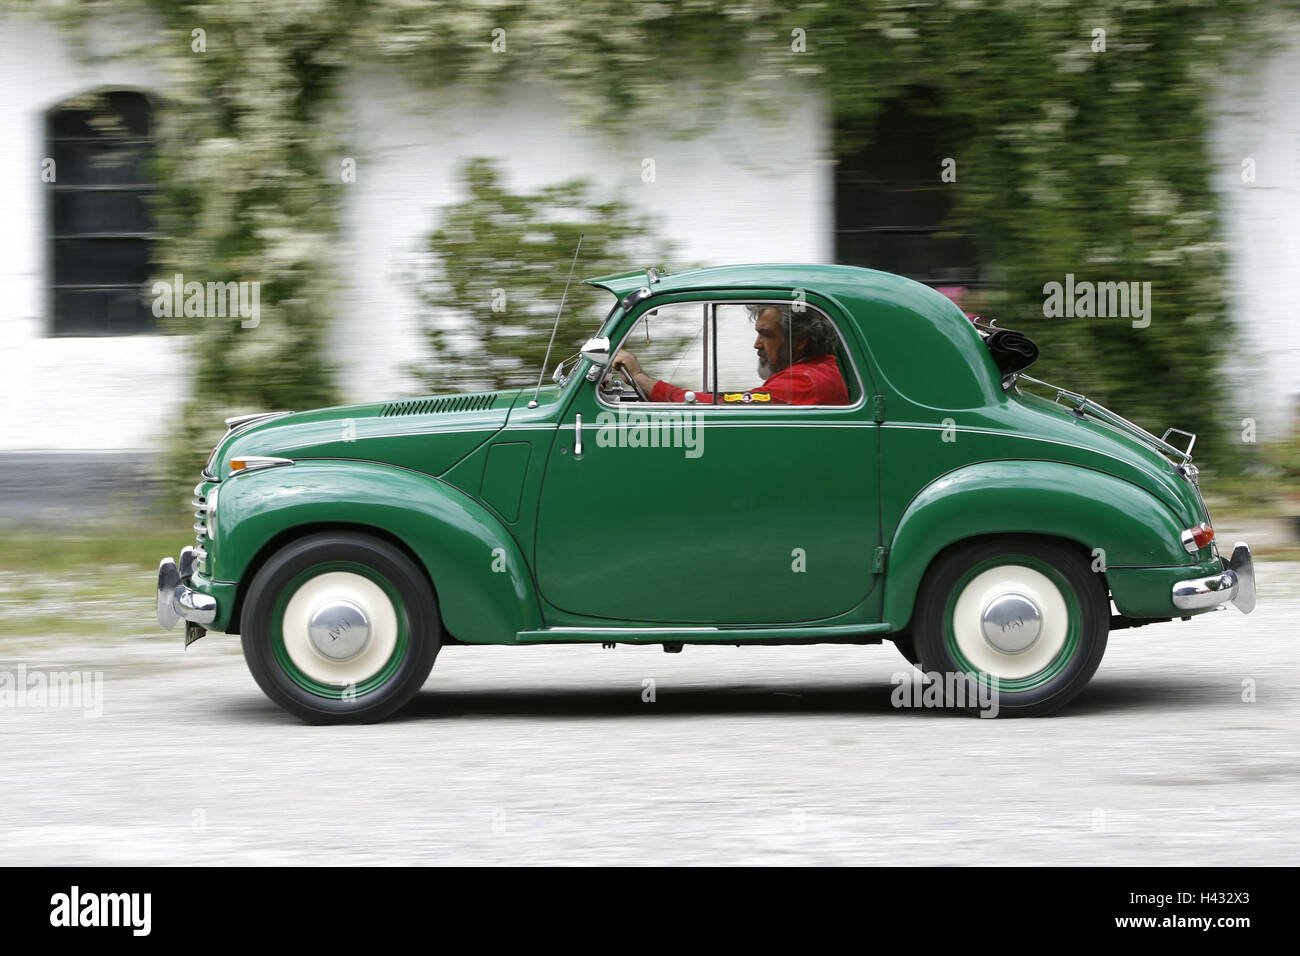 Fiat Topolino, green, panning, house - Stock Image